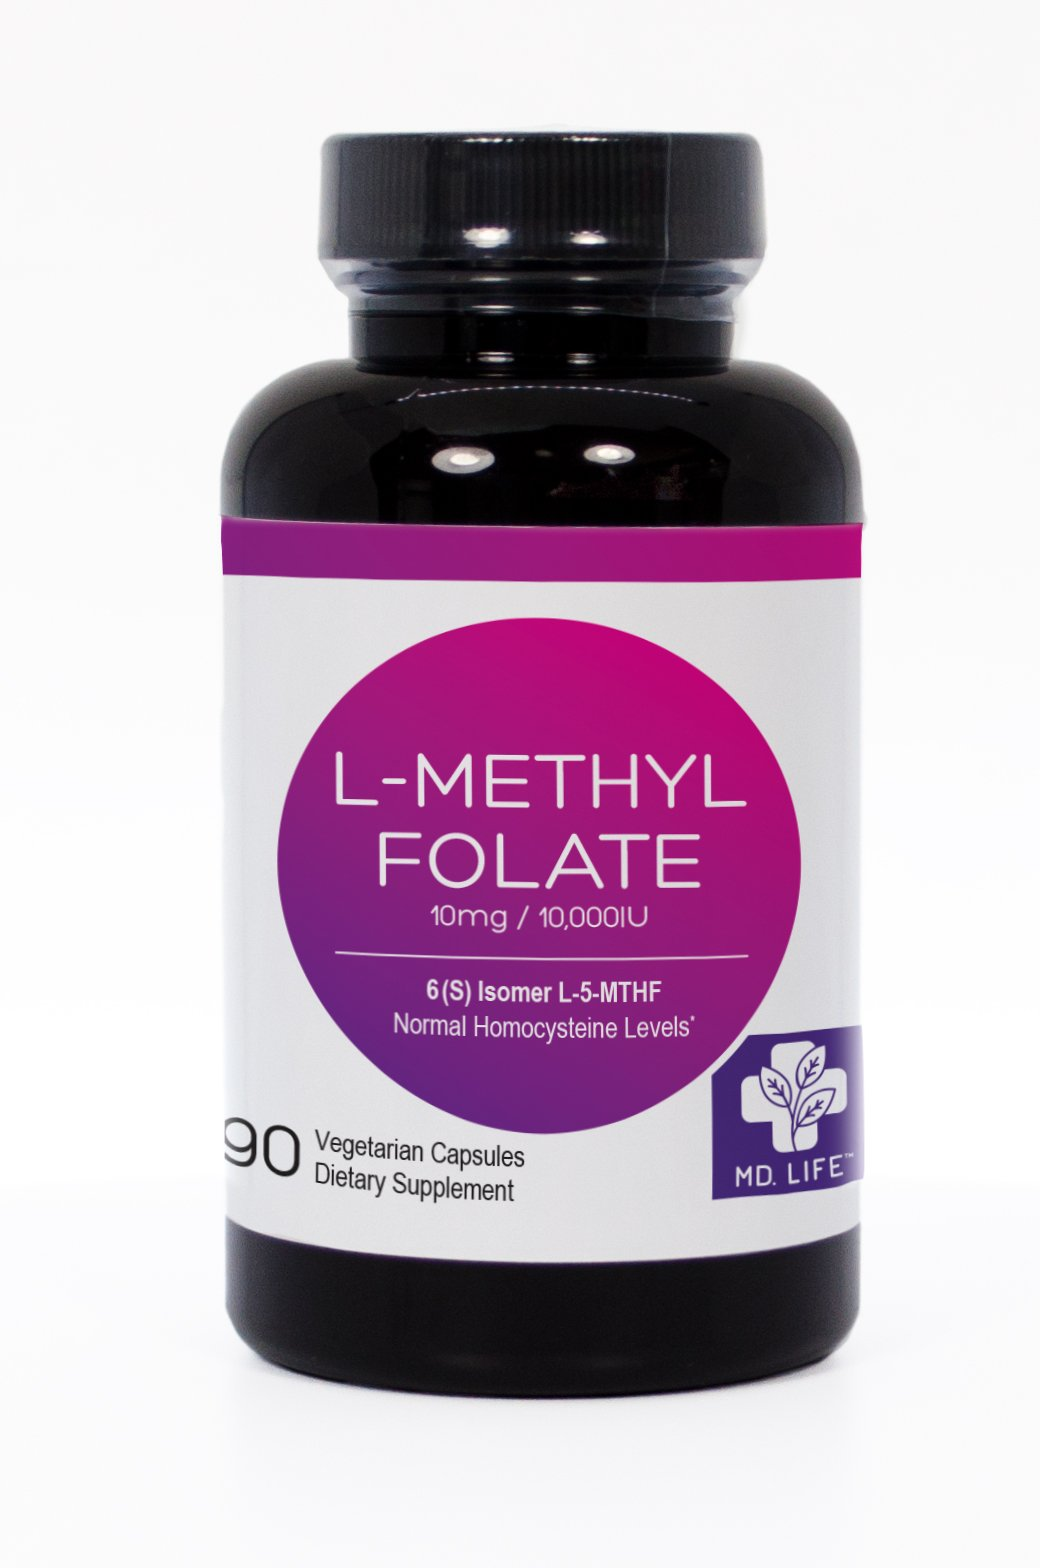 MD LIFE L-MethylFolate 10mg -Active 5-MTHF 90 capsules by MD.LIFE